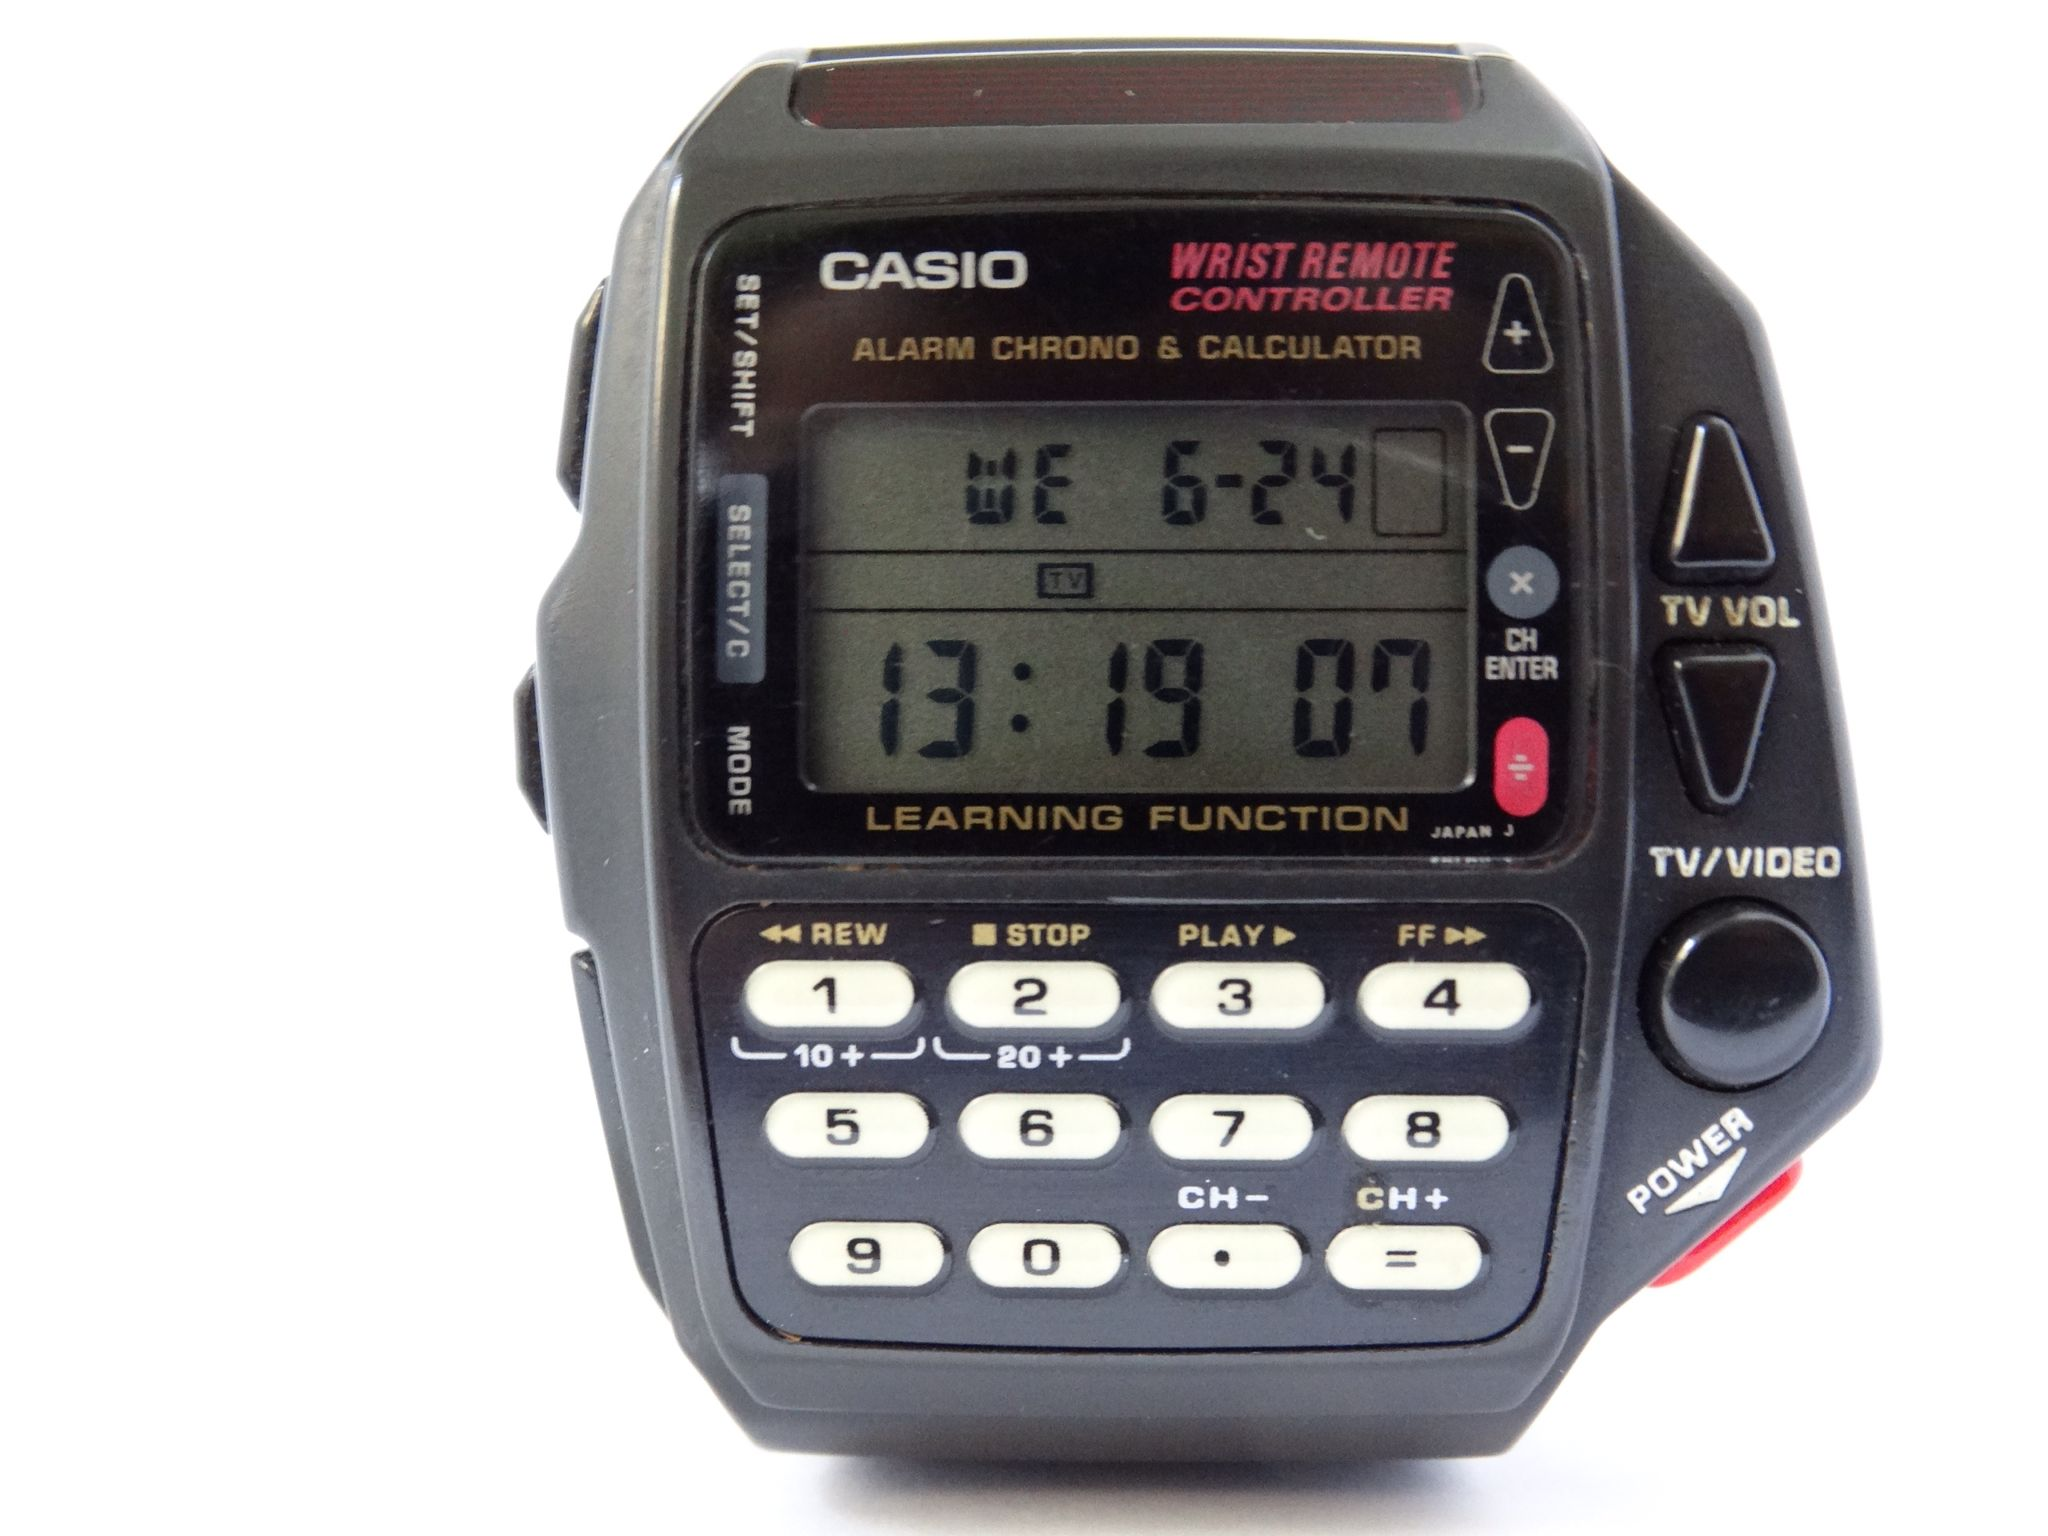 a911df7e9832 CASIO CMD-40 WRIST REMOTE CONTROLLER W  LEARNING FUNCTION CALCULATOR ...